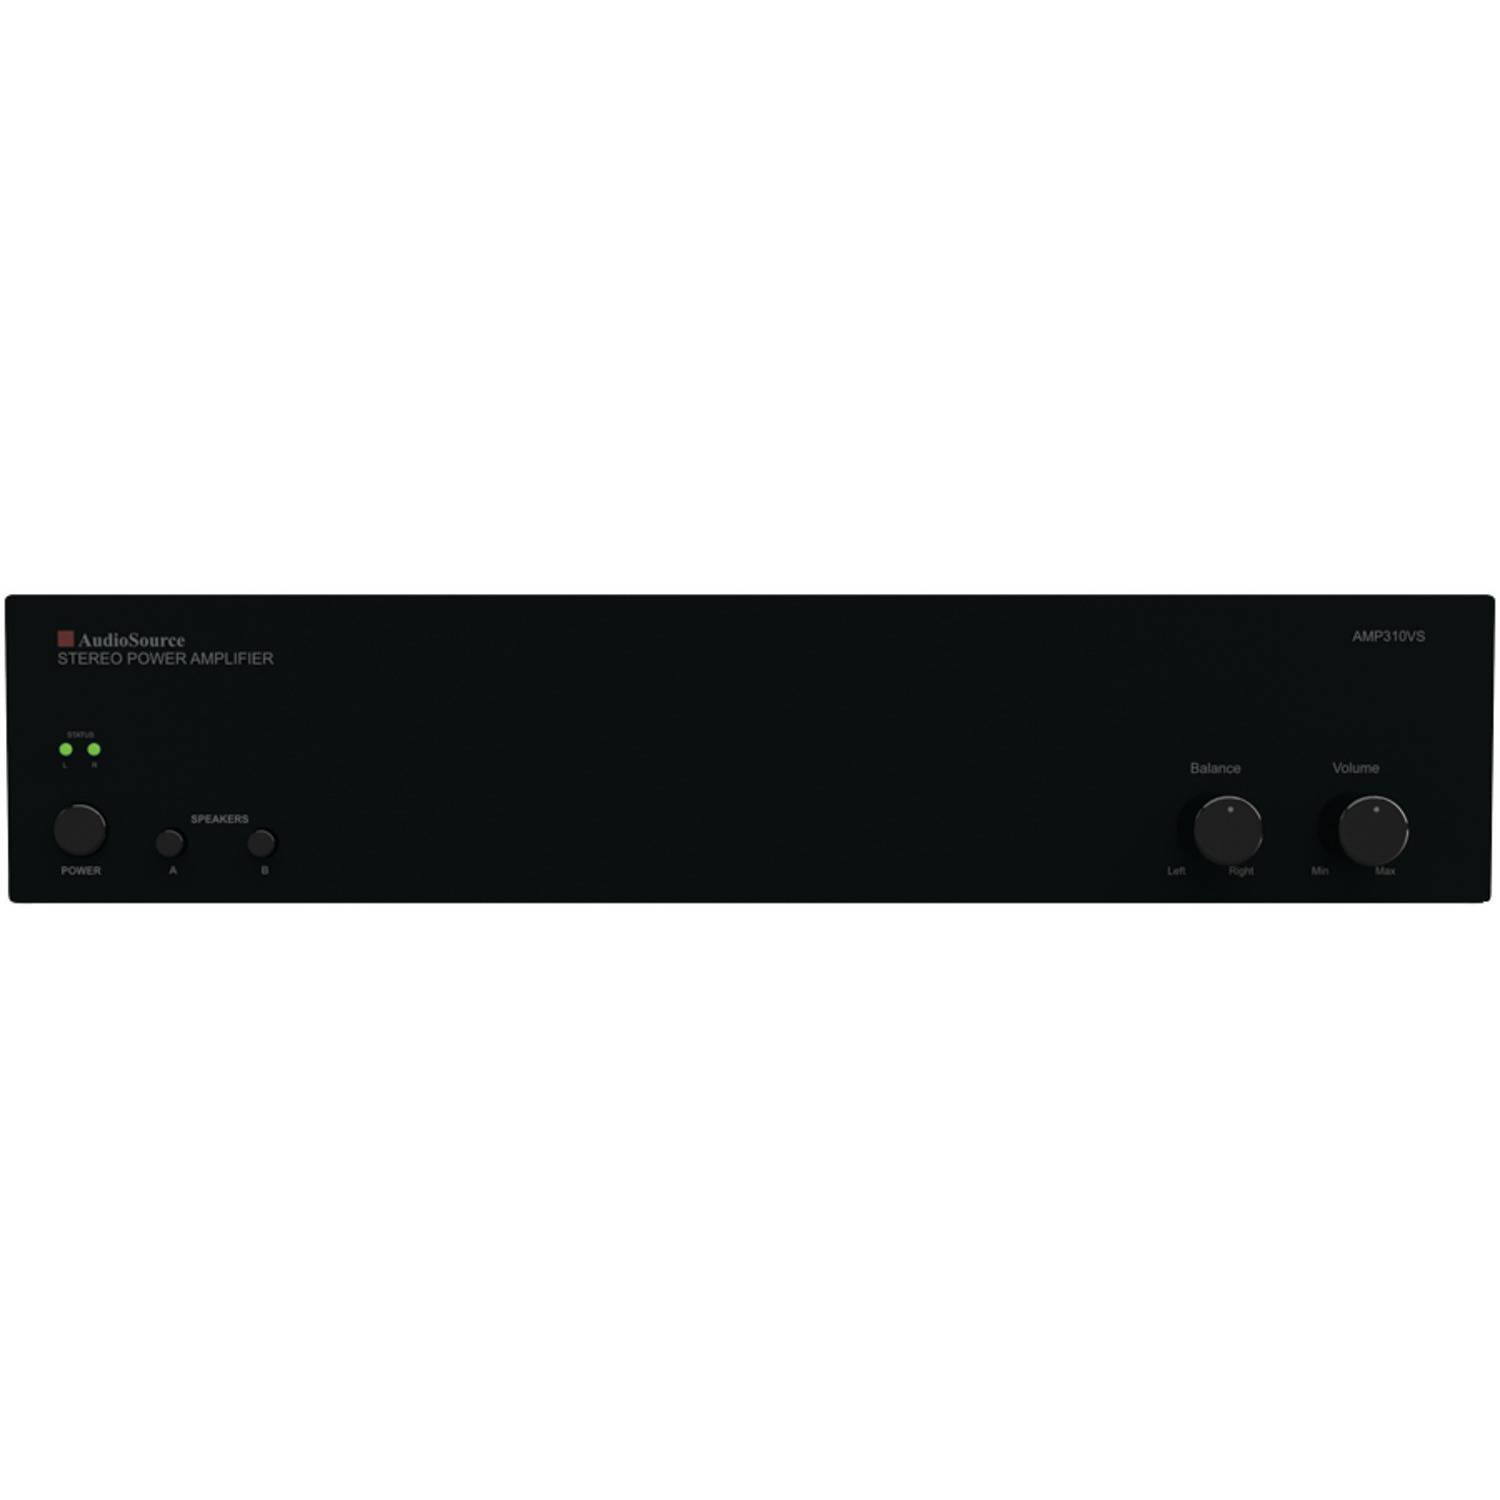 AudioSource AMP310VS 2-Channel Power Amplifier with 150 Watts Per Channel by AudioSource